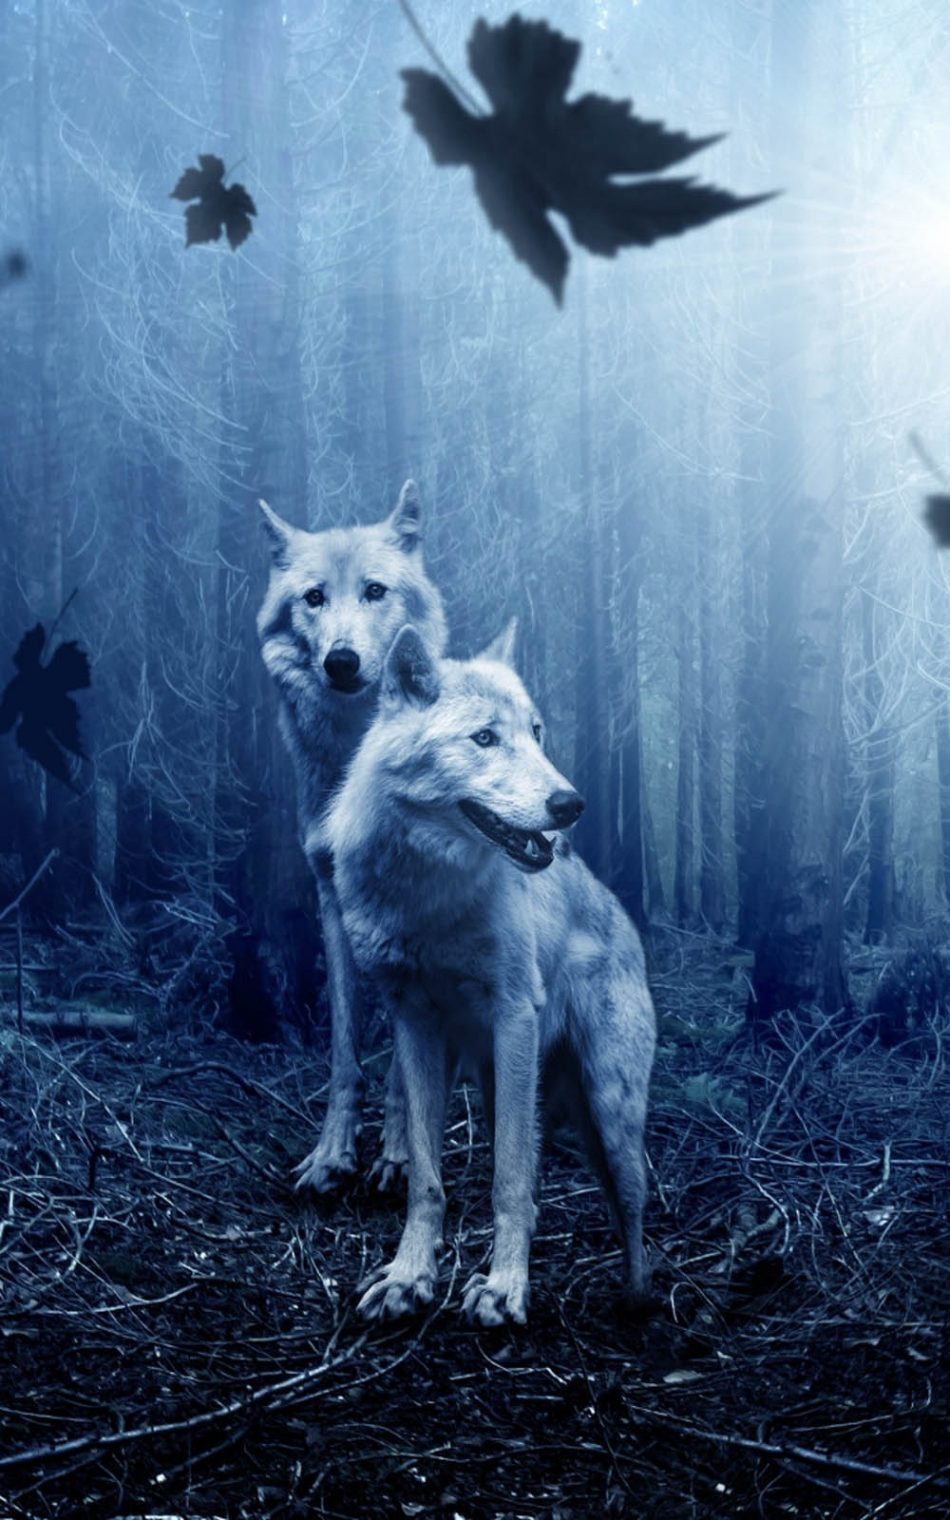 Top Wallpaper Night Forest - Wolves-Night-Forest-HD-Mobile-Wallpaper-950x1520  Snapshot-413987.jpg